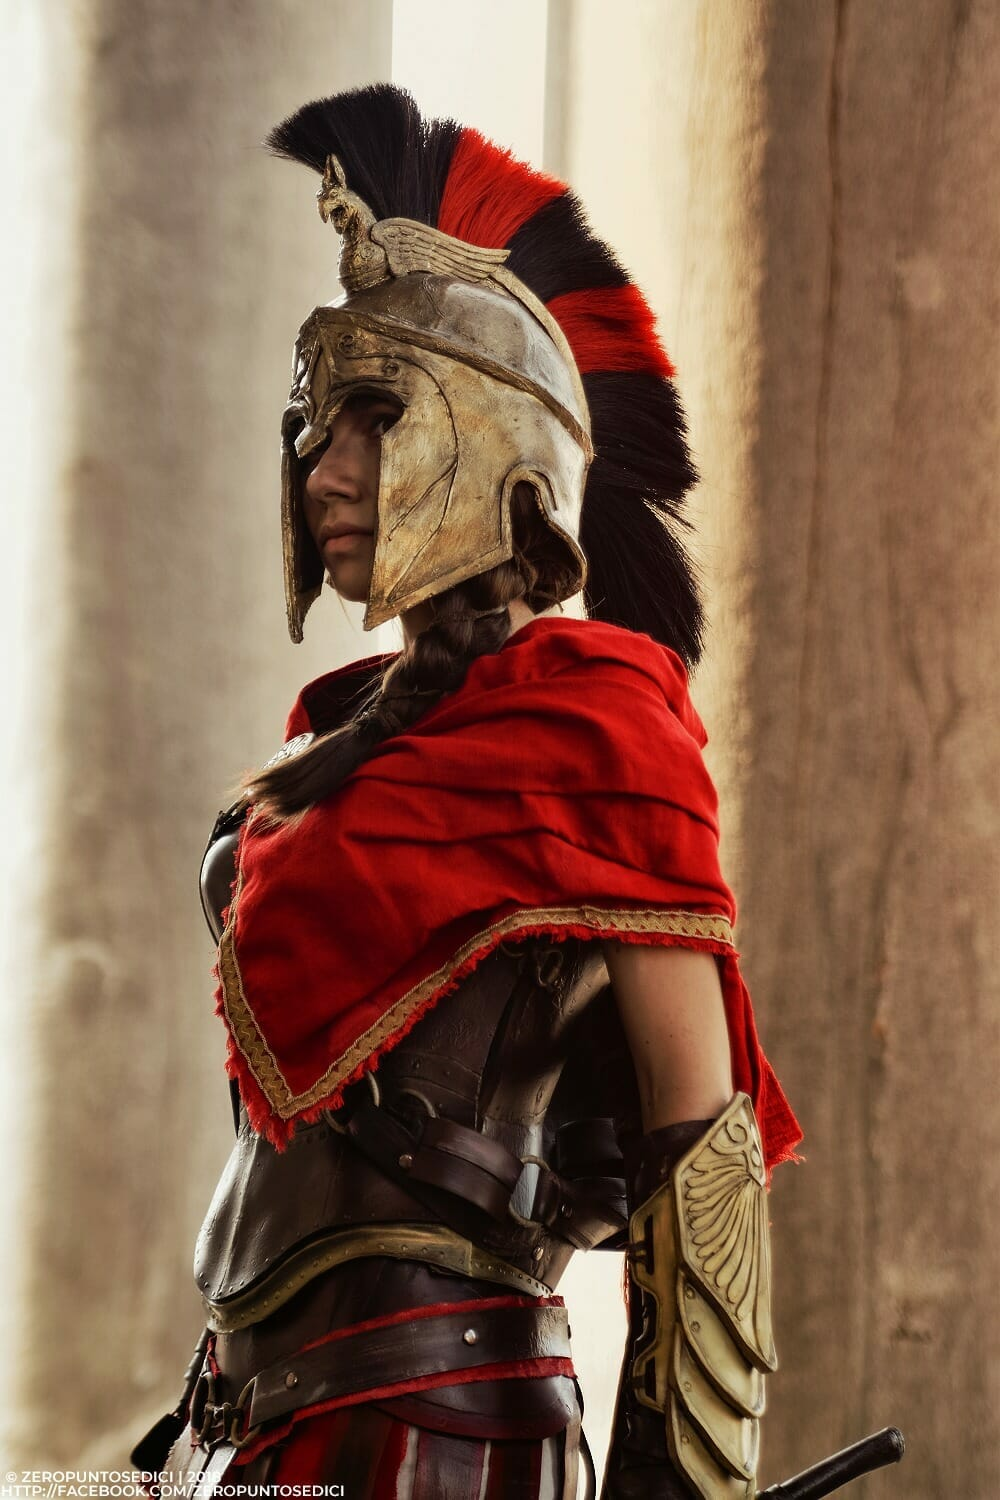 Kassandra from Assassin's Creed Odyssey cosplay